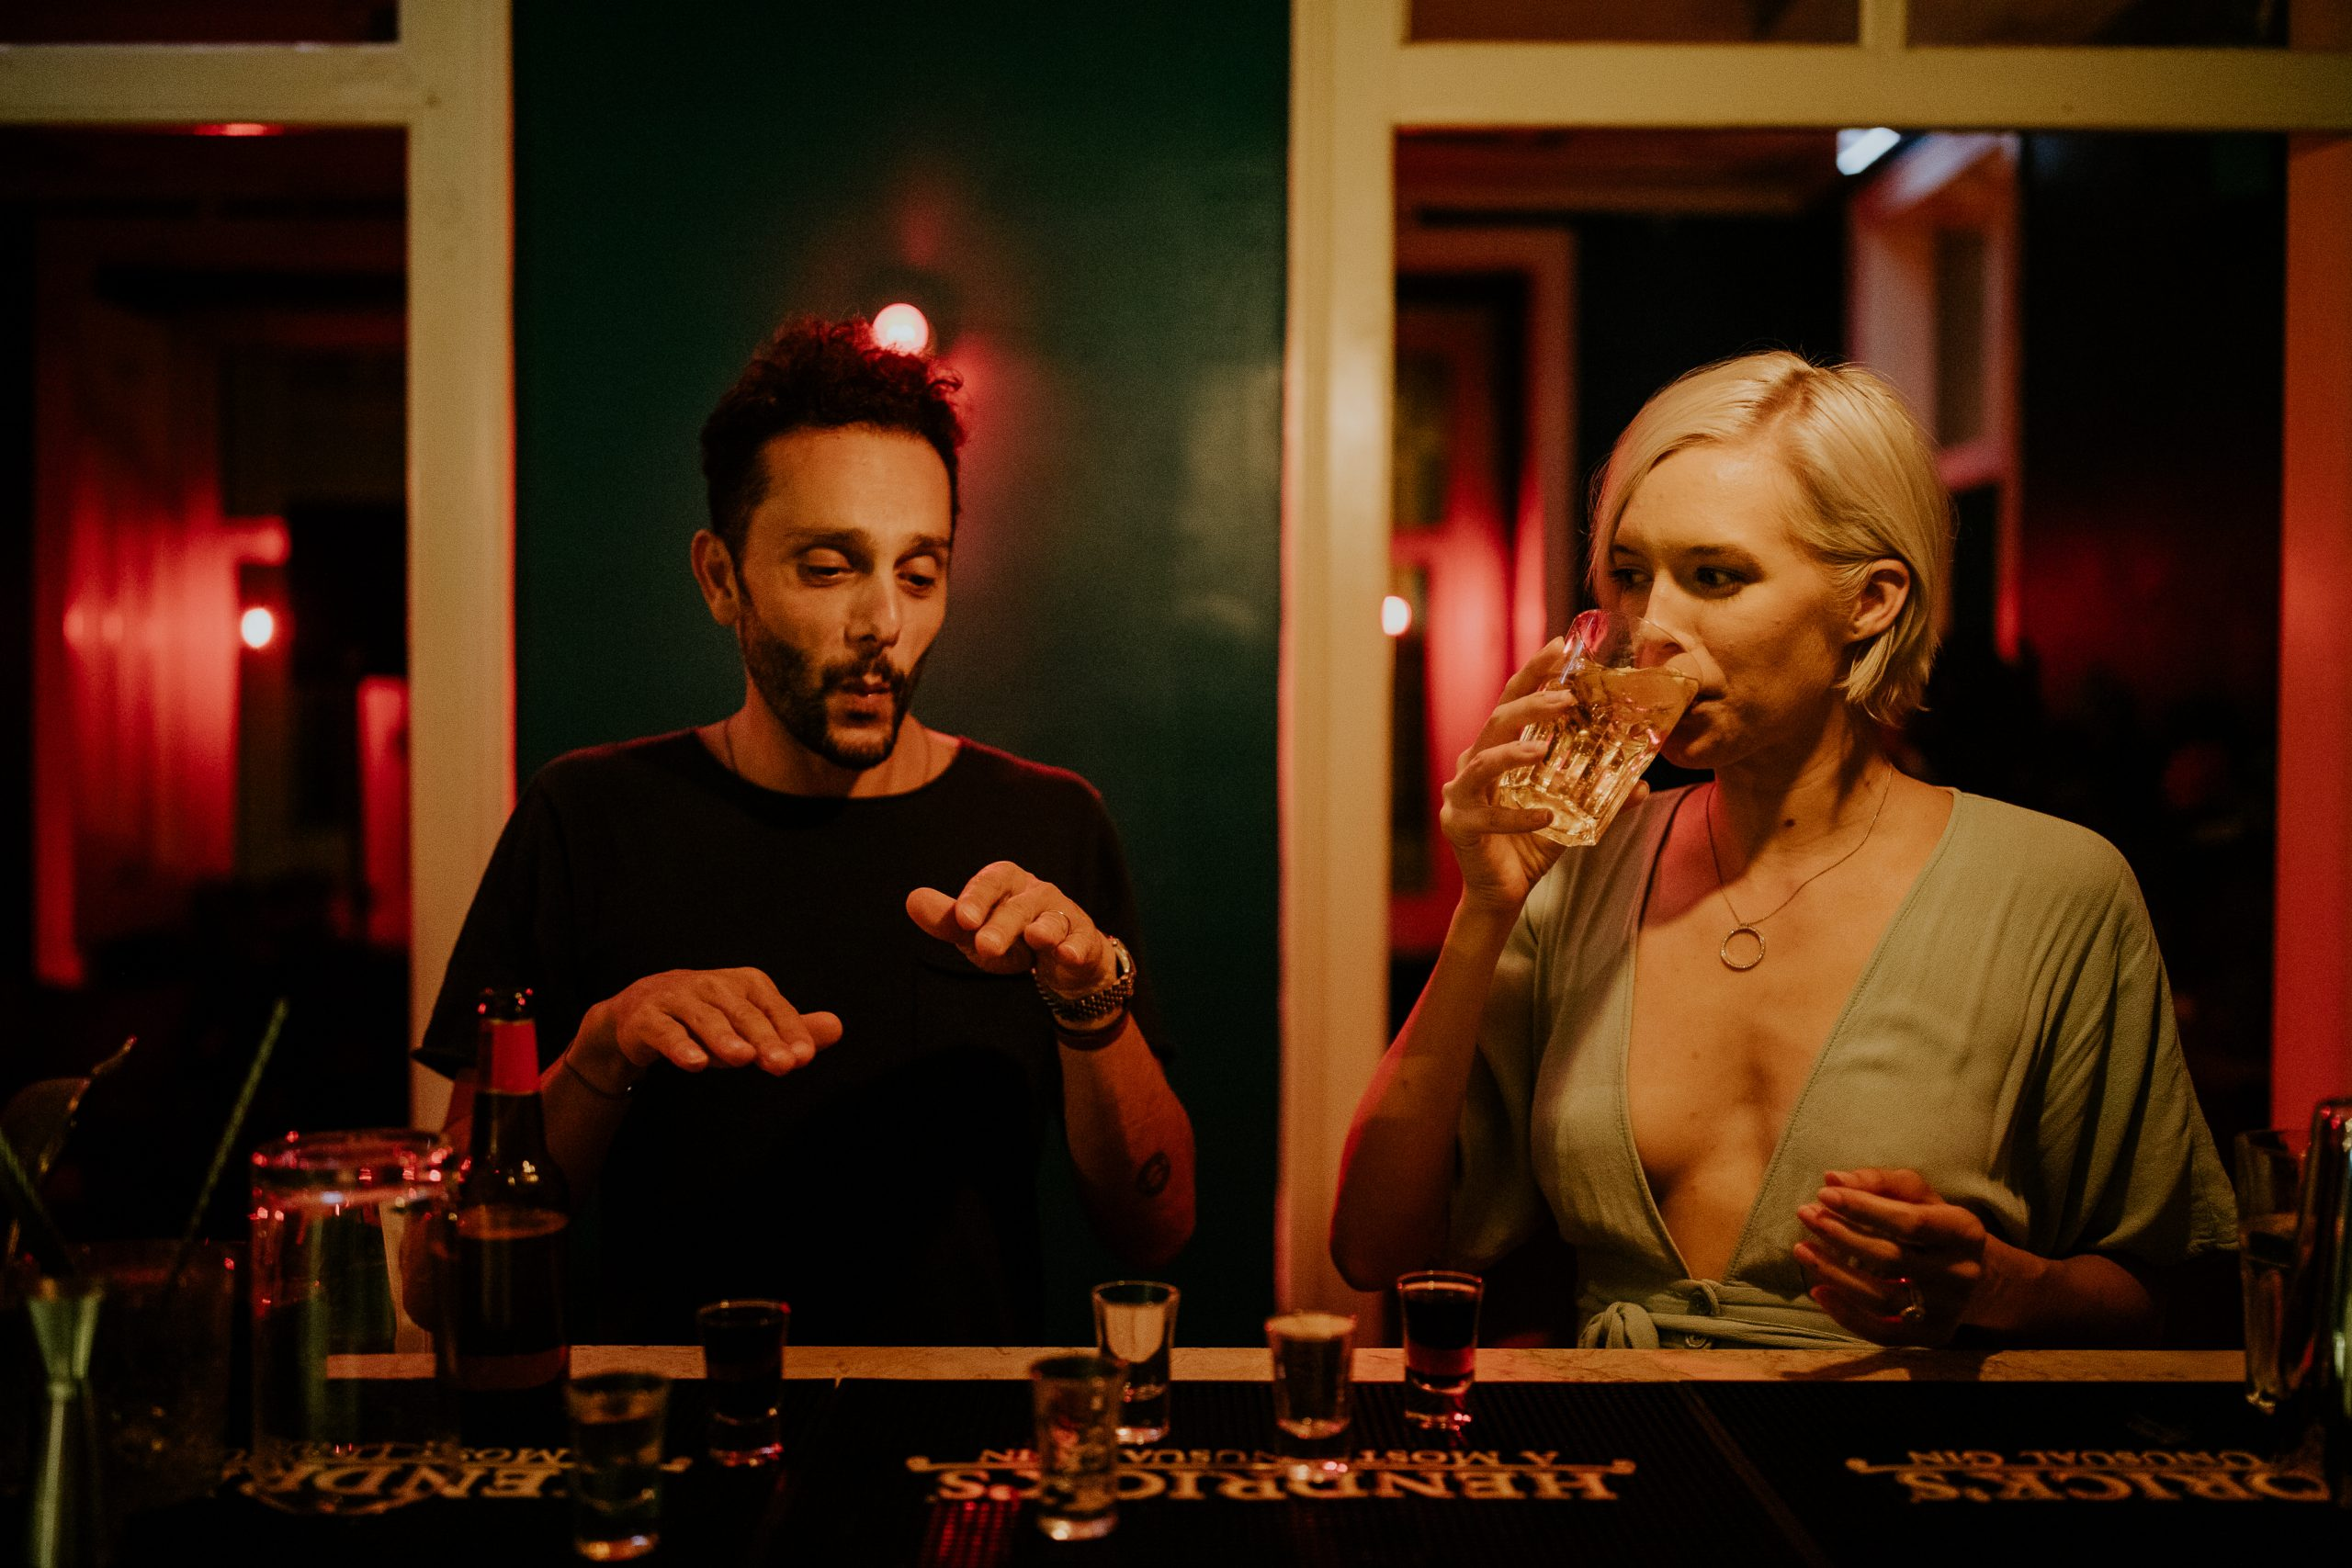 man and woman having drinks and shots on a bar at night